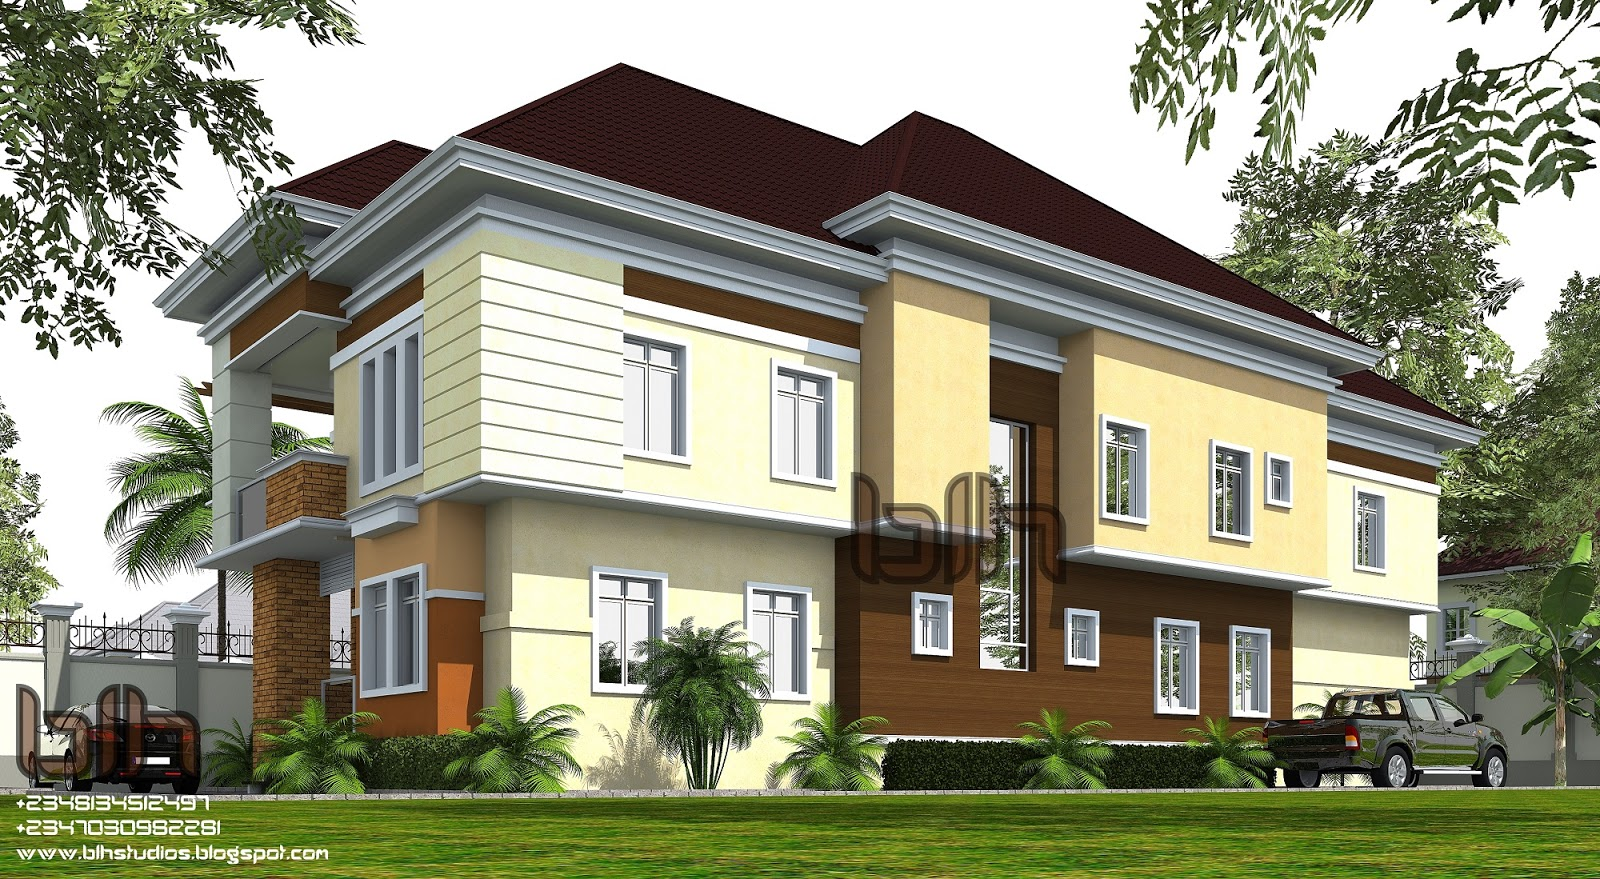 Architectural designs by blacklakehouse 5 bedroom duplex for Duplex bed